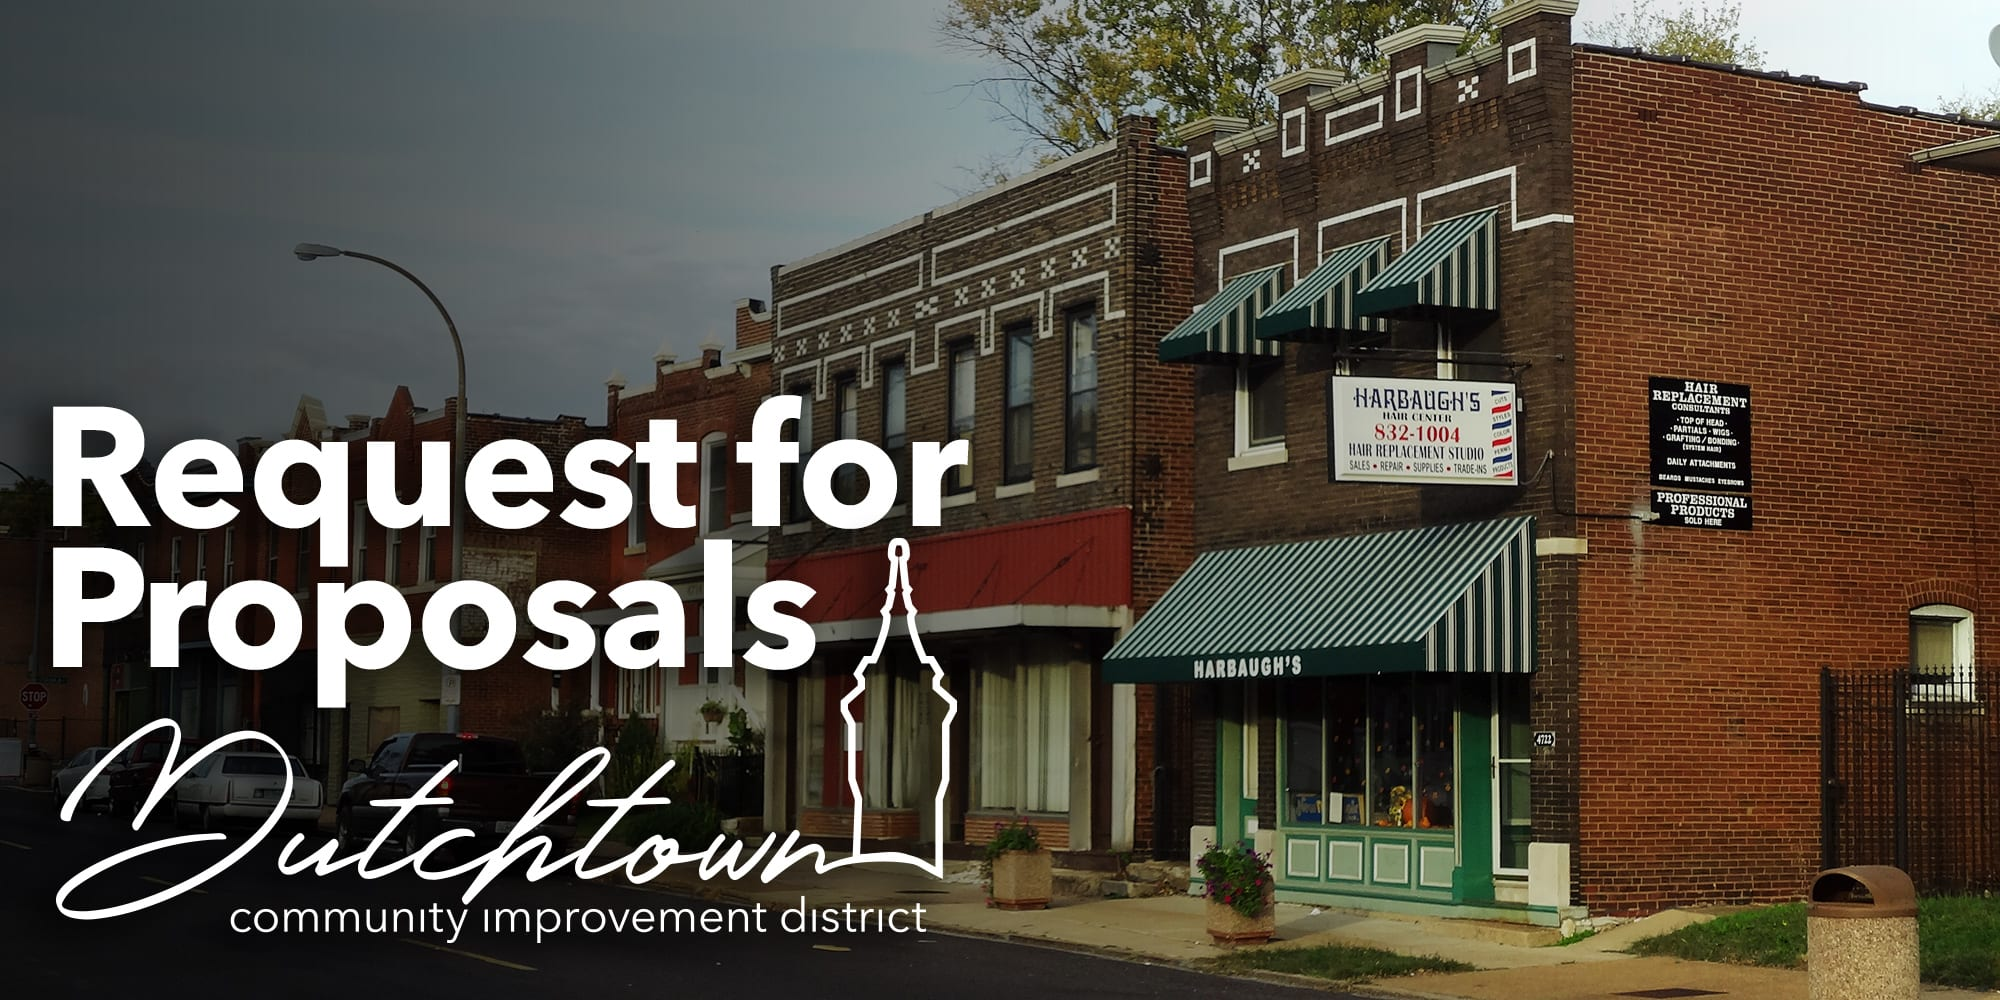 Request for Proposals from the Dutchtown Community Improvement District. Photo of businesses on Virginia Avenue in Dutchtown, St. Louis, Mo.